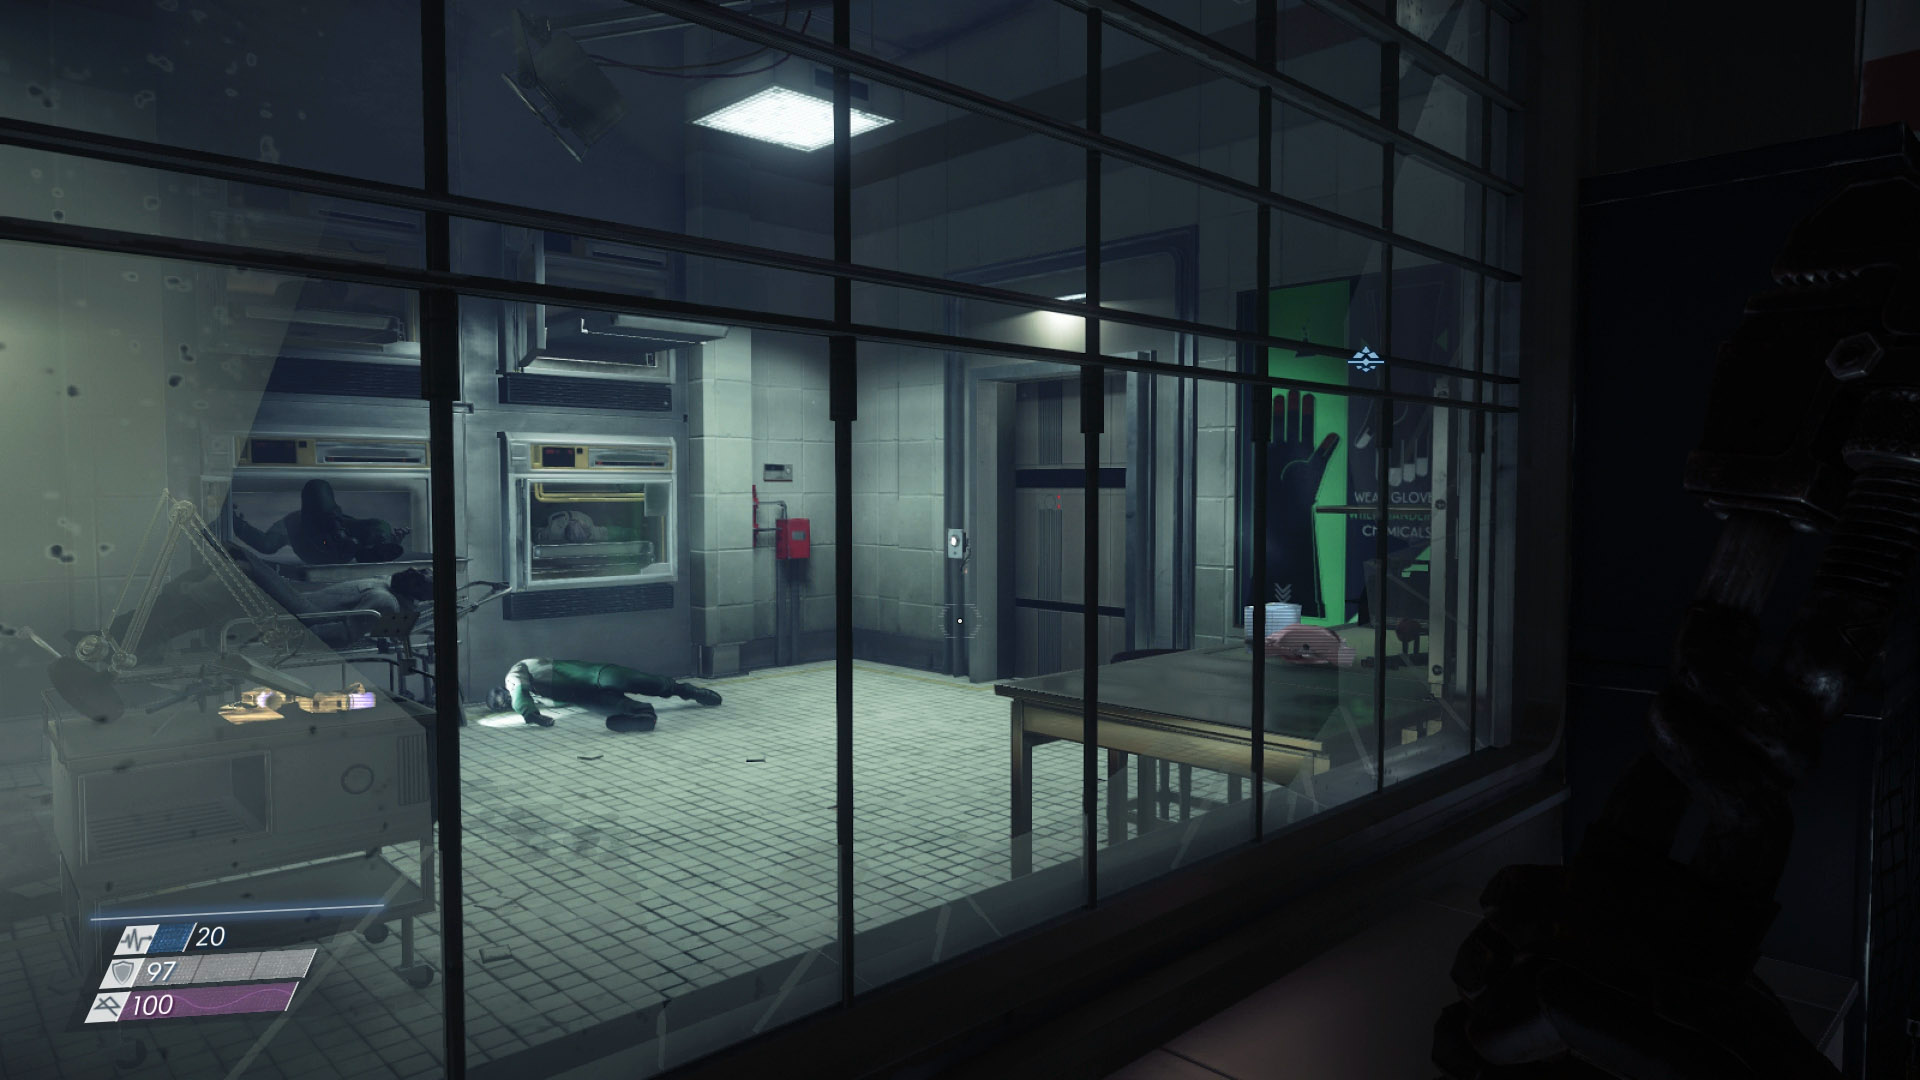 No matter how you choice to access the Morgue in Psychotronics, you will need to smash the glass.